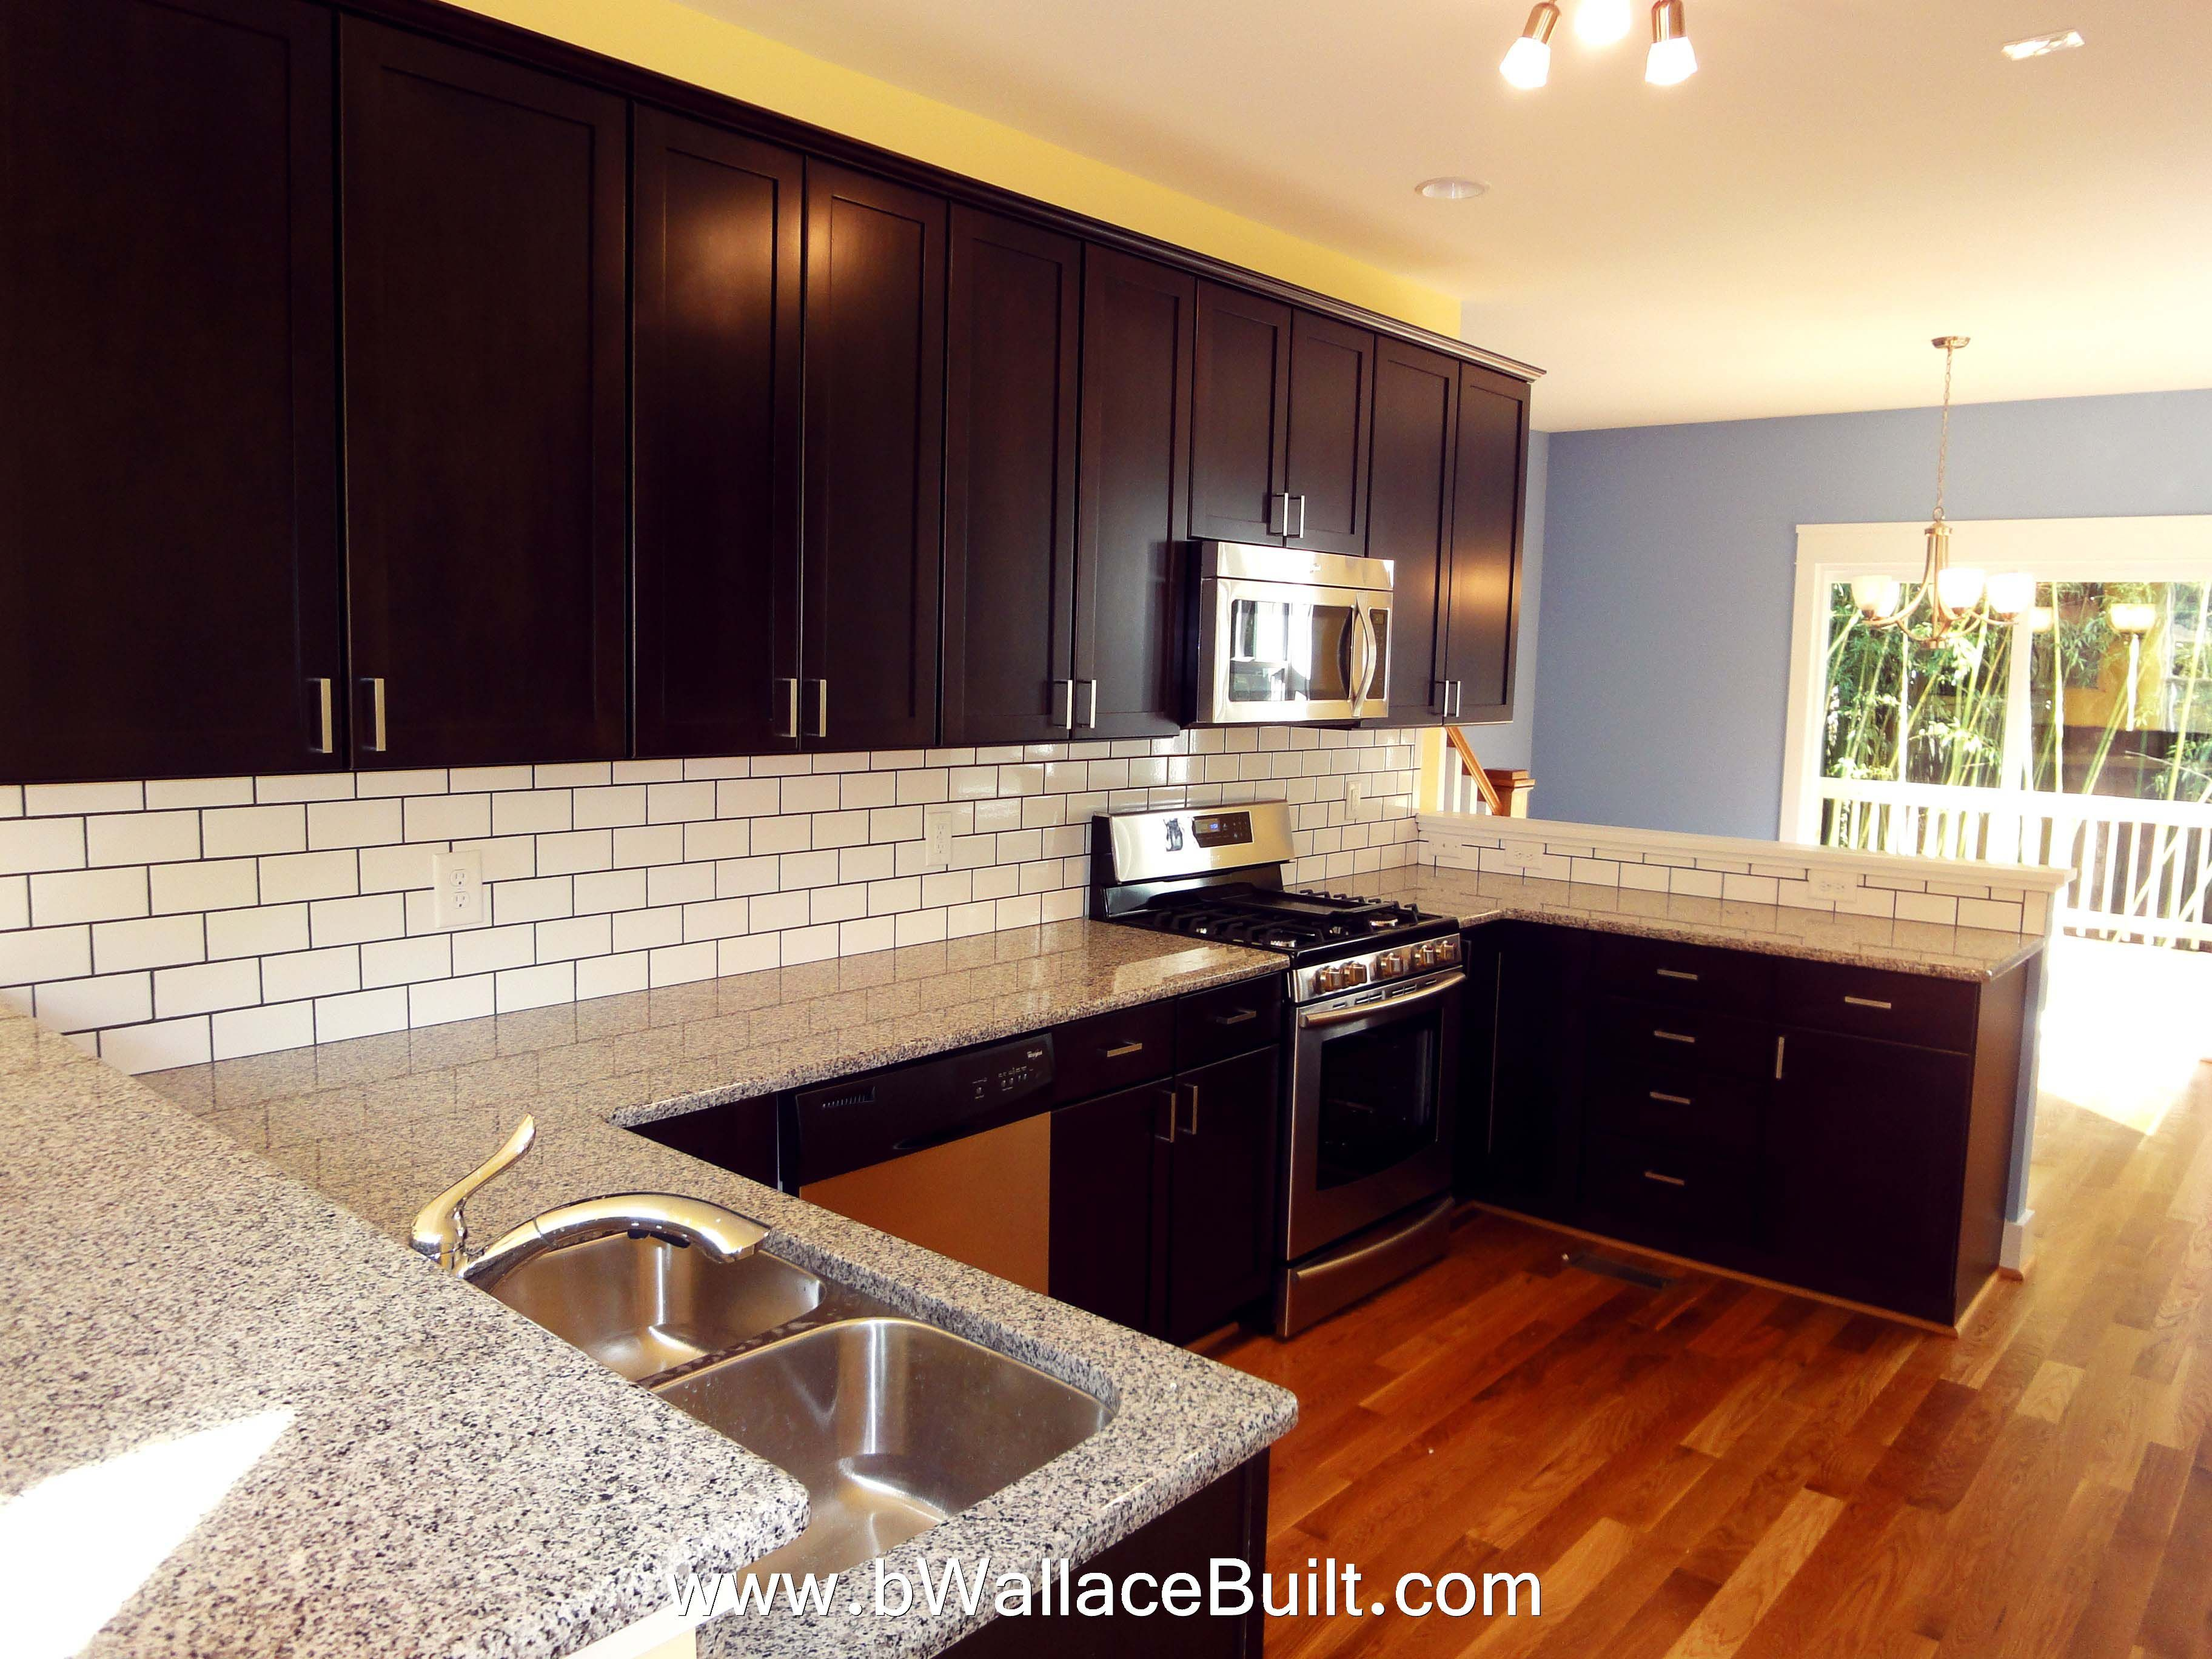 Large open Kitchen w/ white subway tile backsplash and  a dark cabinet looks sophisticated.